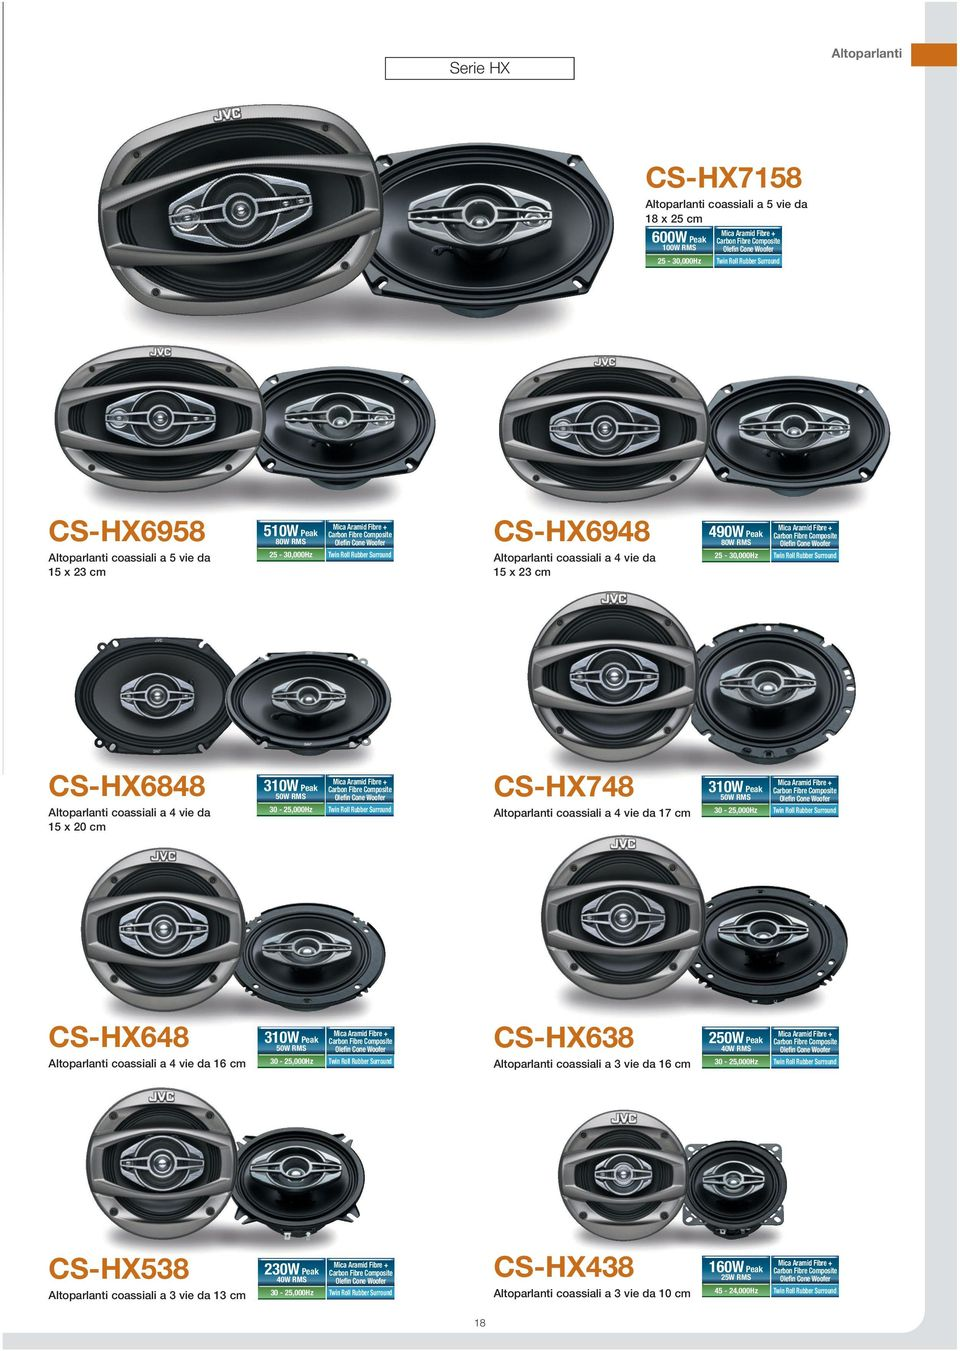 15 x 23 cm 490W Peak 80W RMS 25-30,000Hz Mica Aramid Fibre + Carbon Fibre Composite Olefin Cone Twin Roll Rubber Surround CS-HX6848 Altoparlanti coassiali a 4 vie da 15 x 20 cm 310W Peak 50W RMS